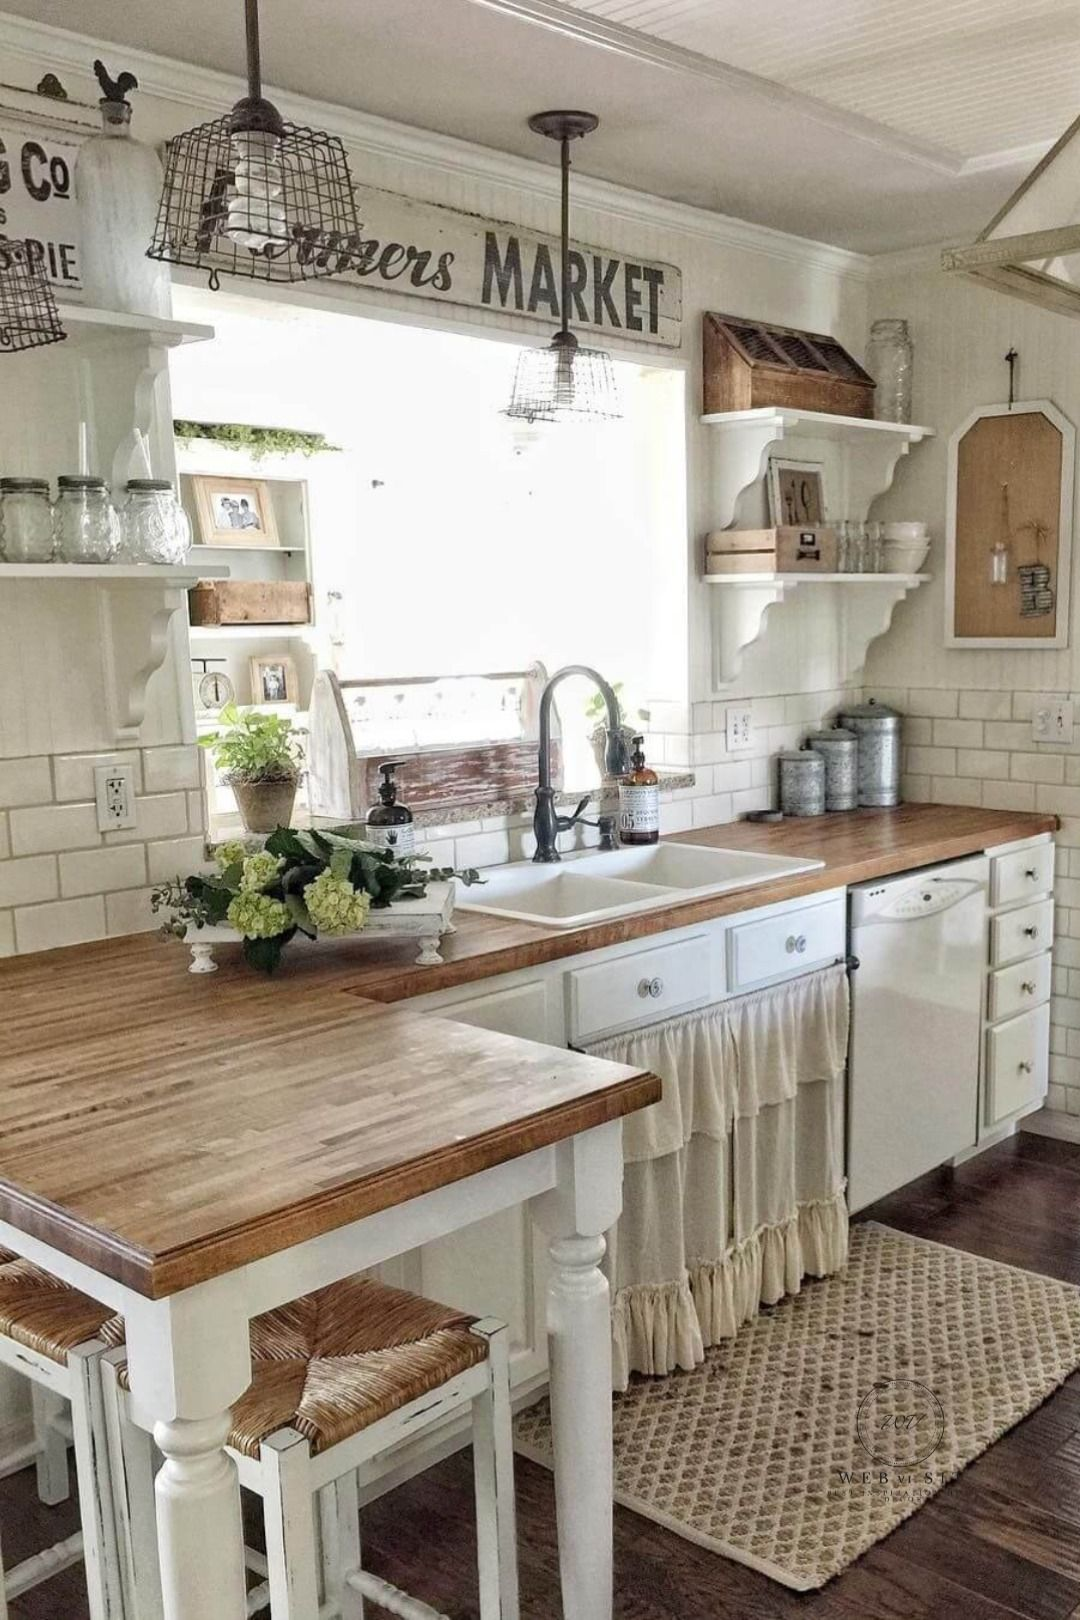 Simple Home Decoration Ideas For Your Kitchen Farmhouse Kitchen Design Farmhouse Kitchen Decor Farmhouse Style Kitchen